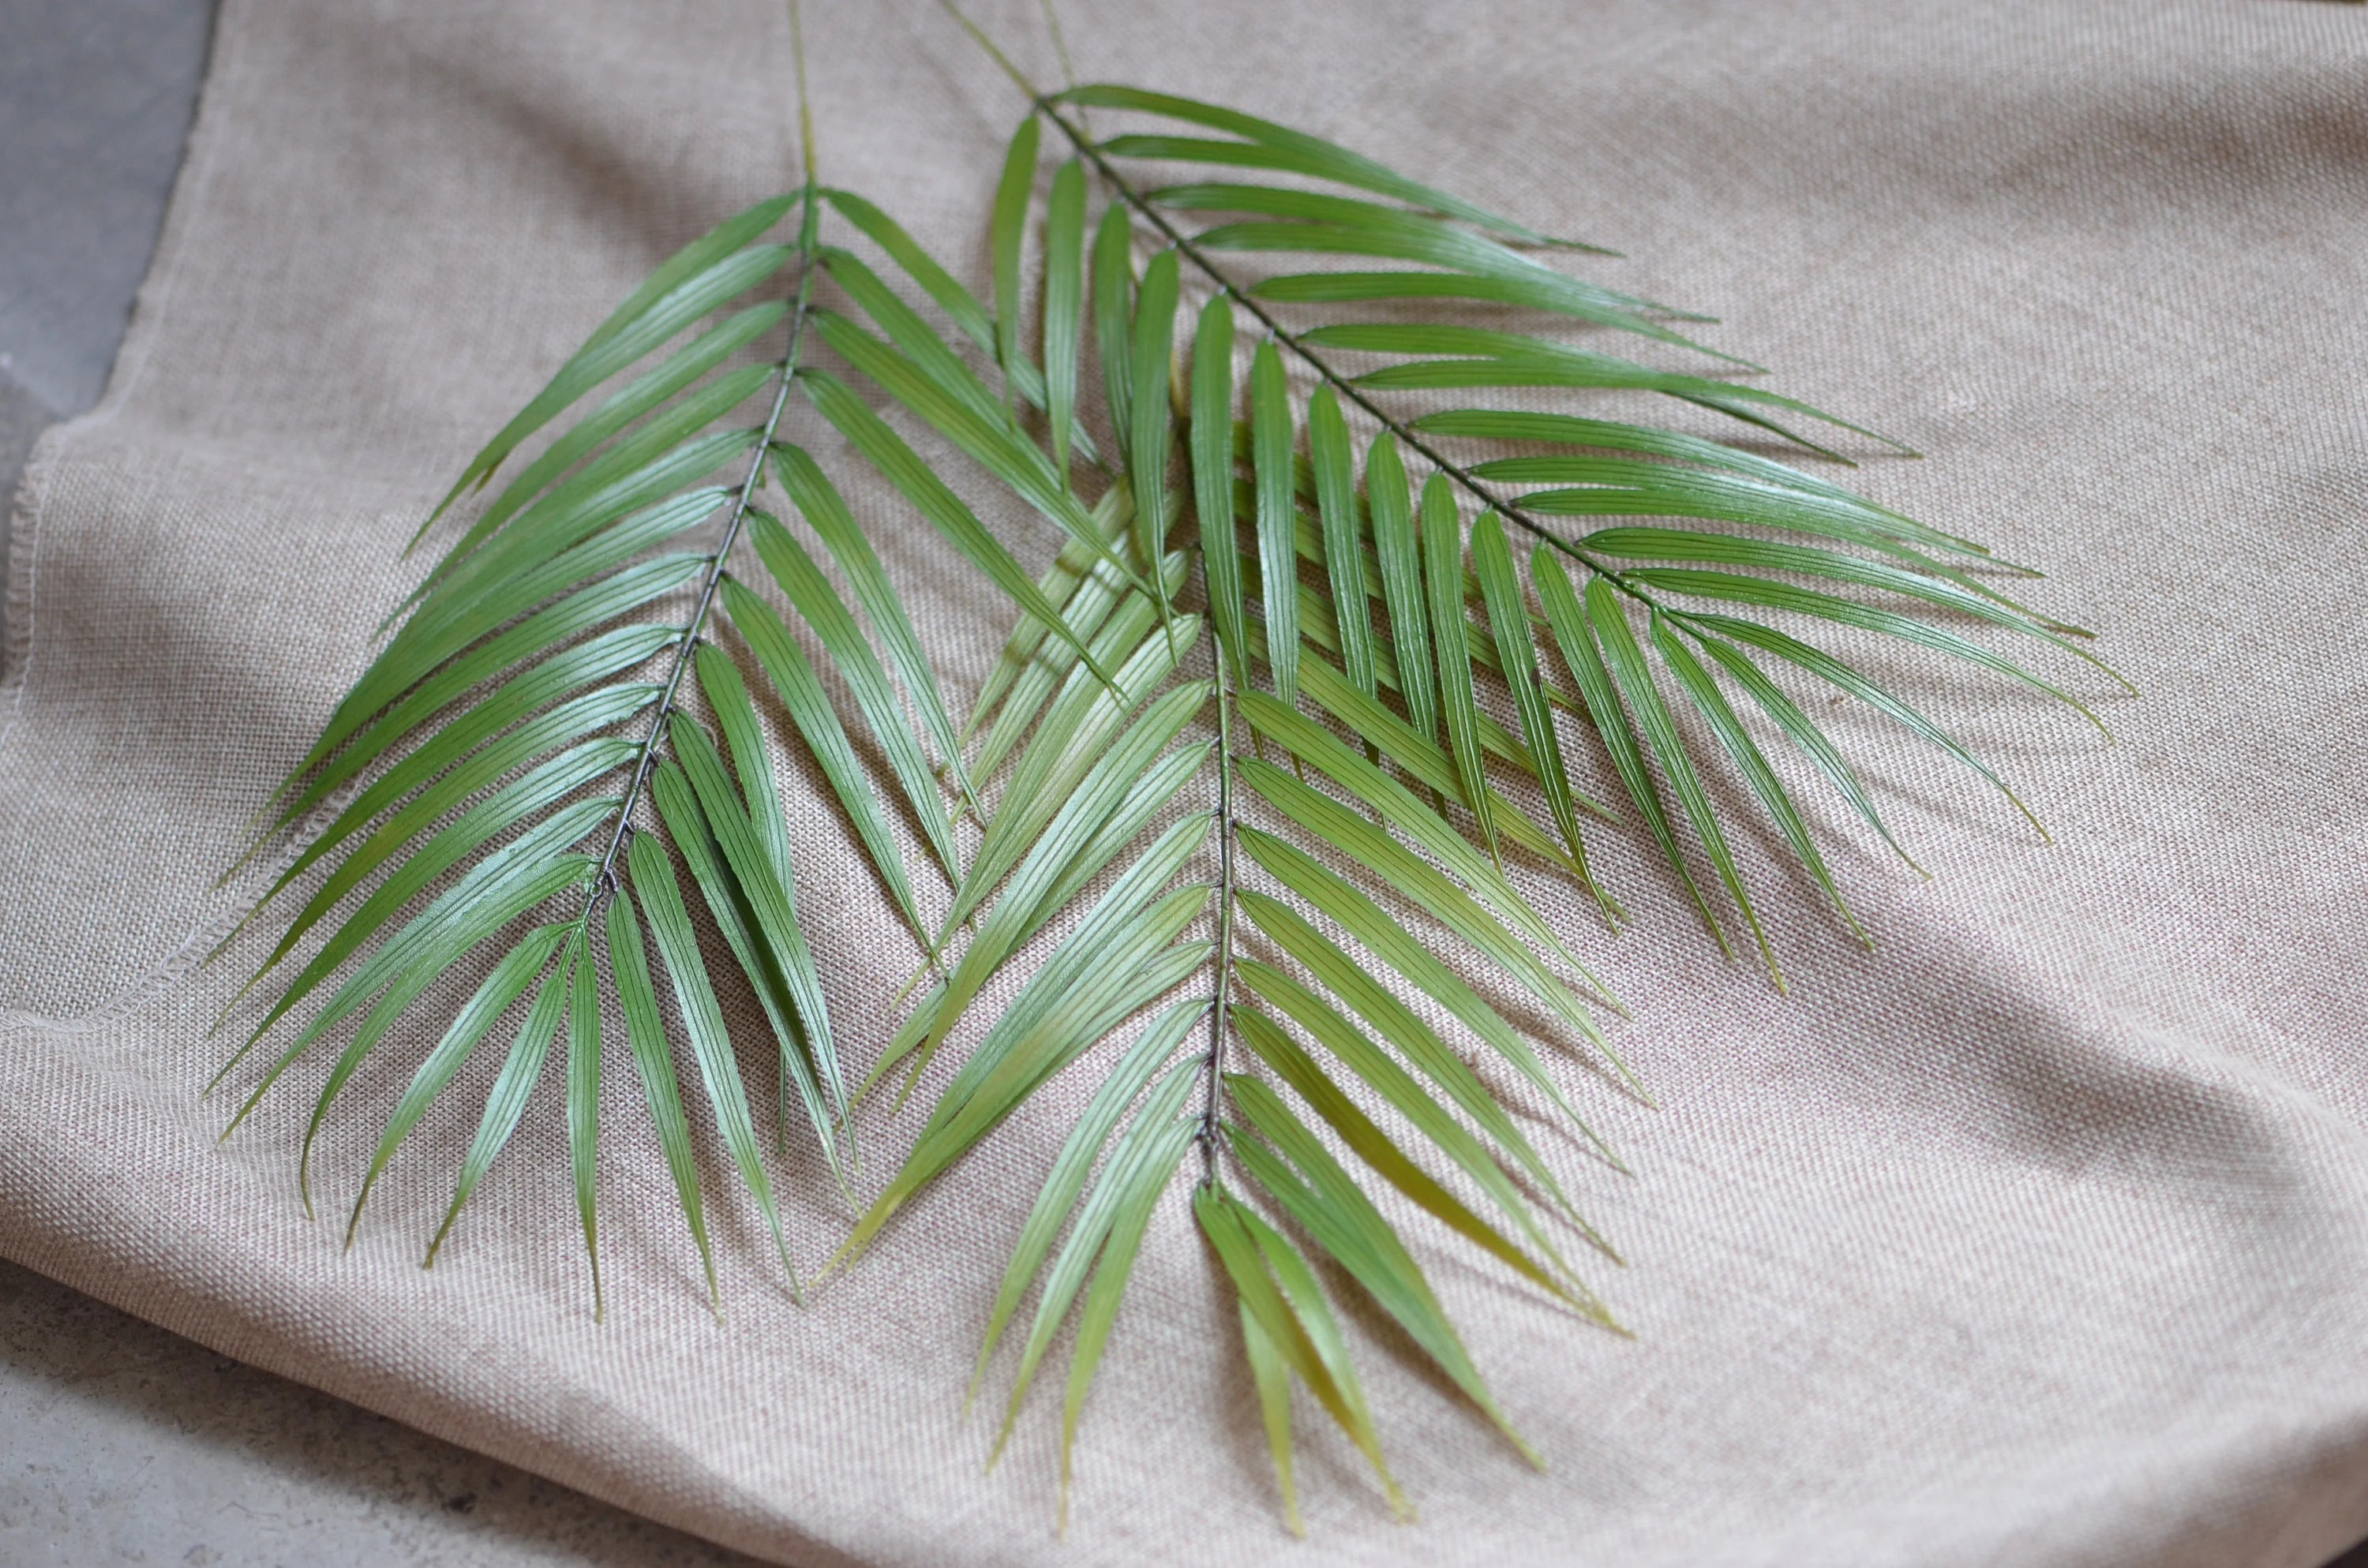 Artificial Chrysalidocarpus Lutescens Palm Leaf Artificial Areca Palm Leaves Faux Tropical Leaves Plam Decorations Wedding Greenery